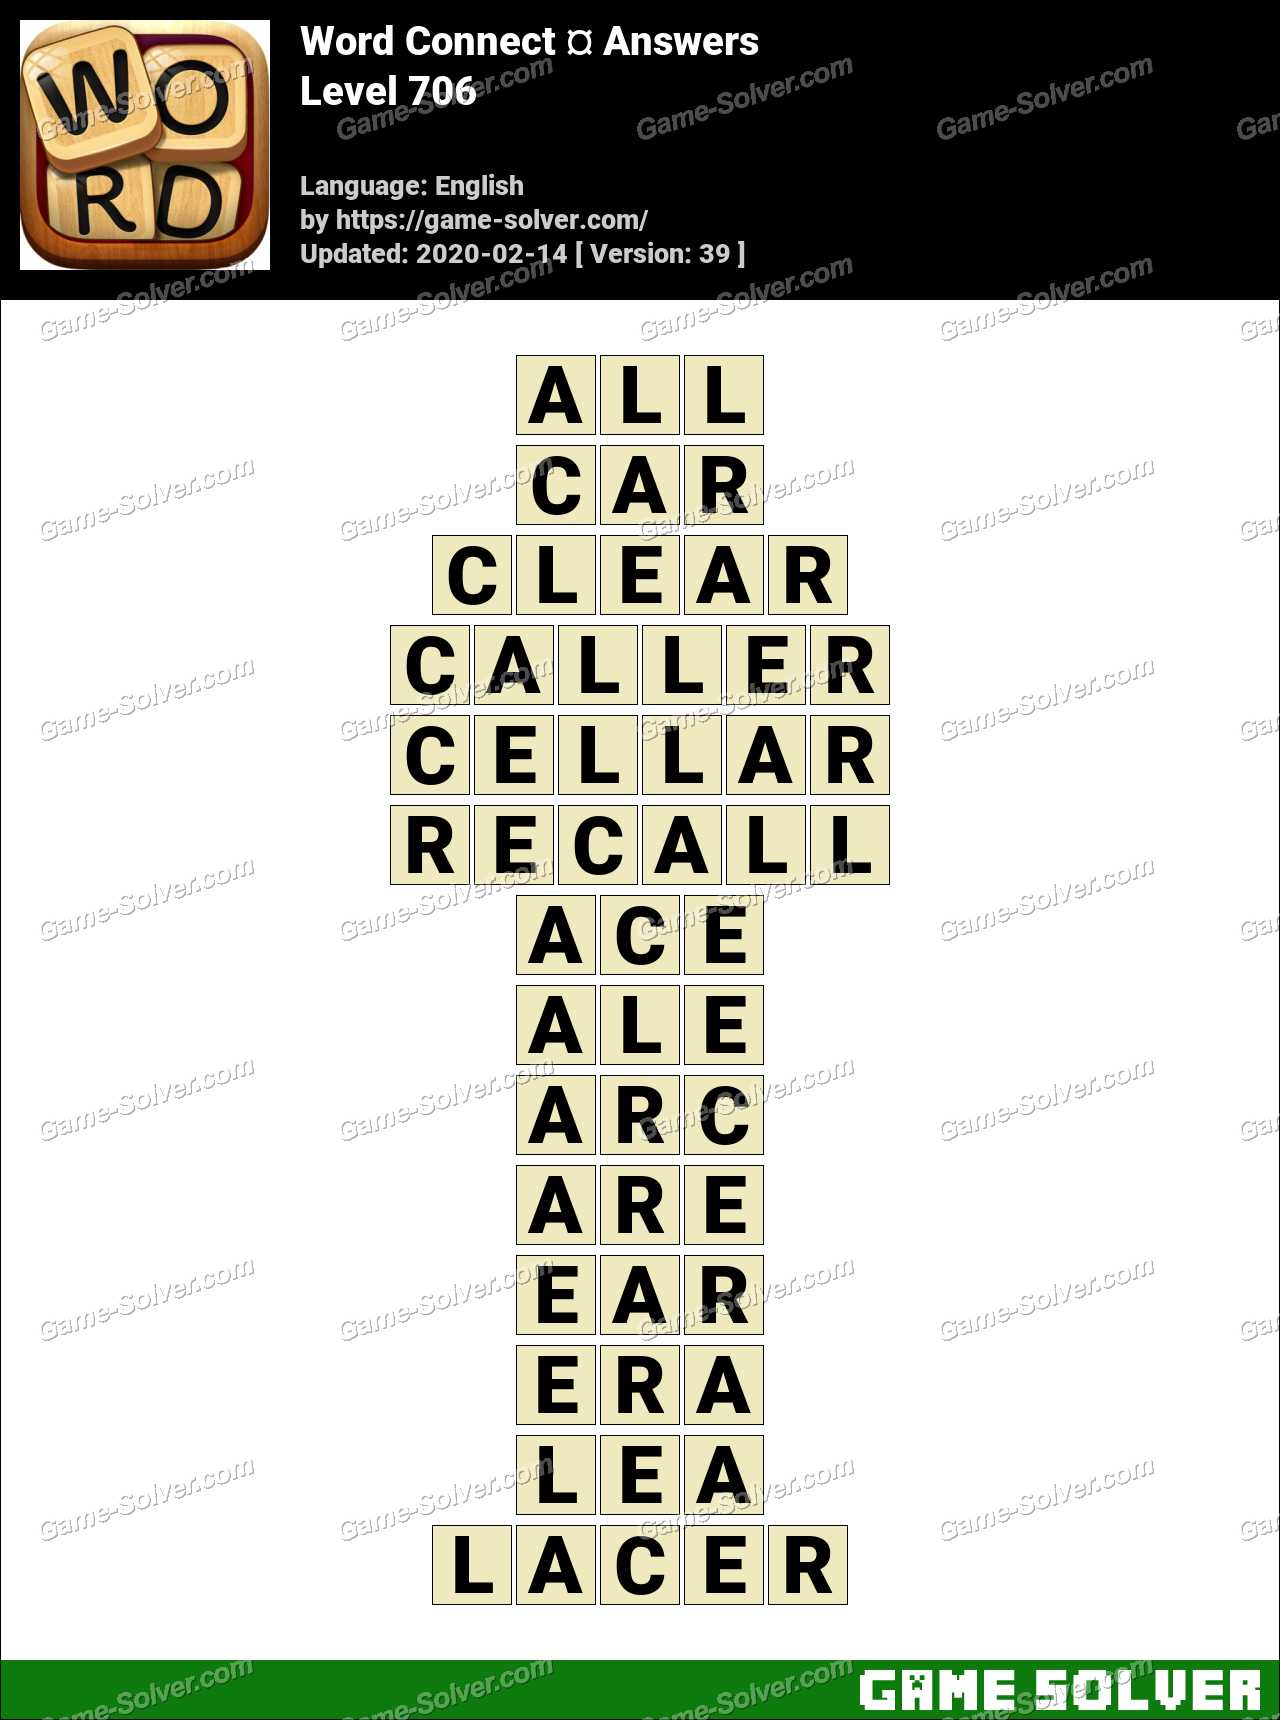 Word Connect Level 706 Answers